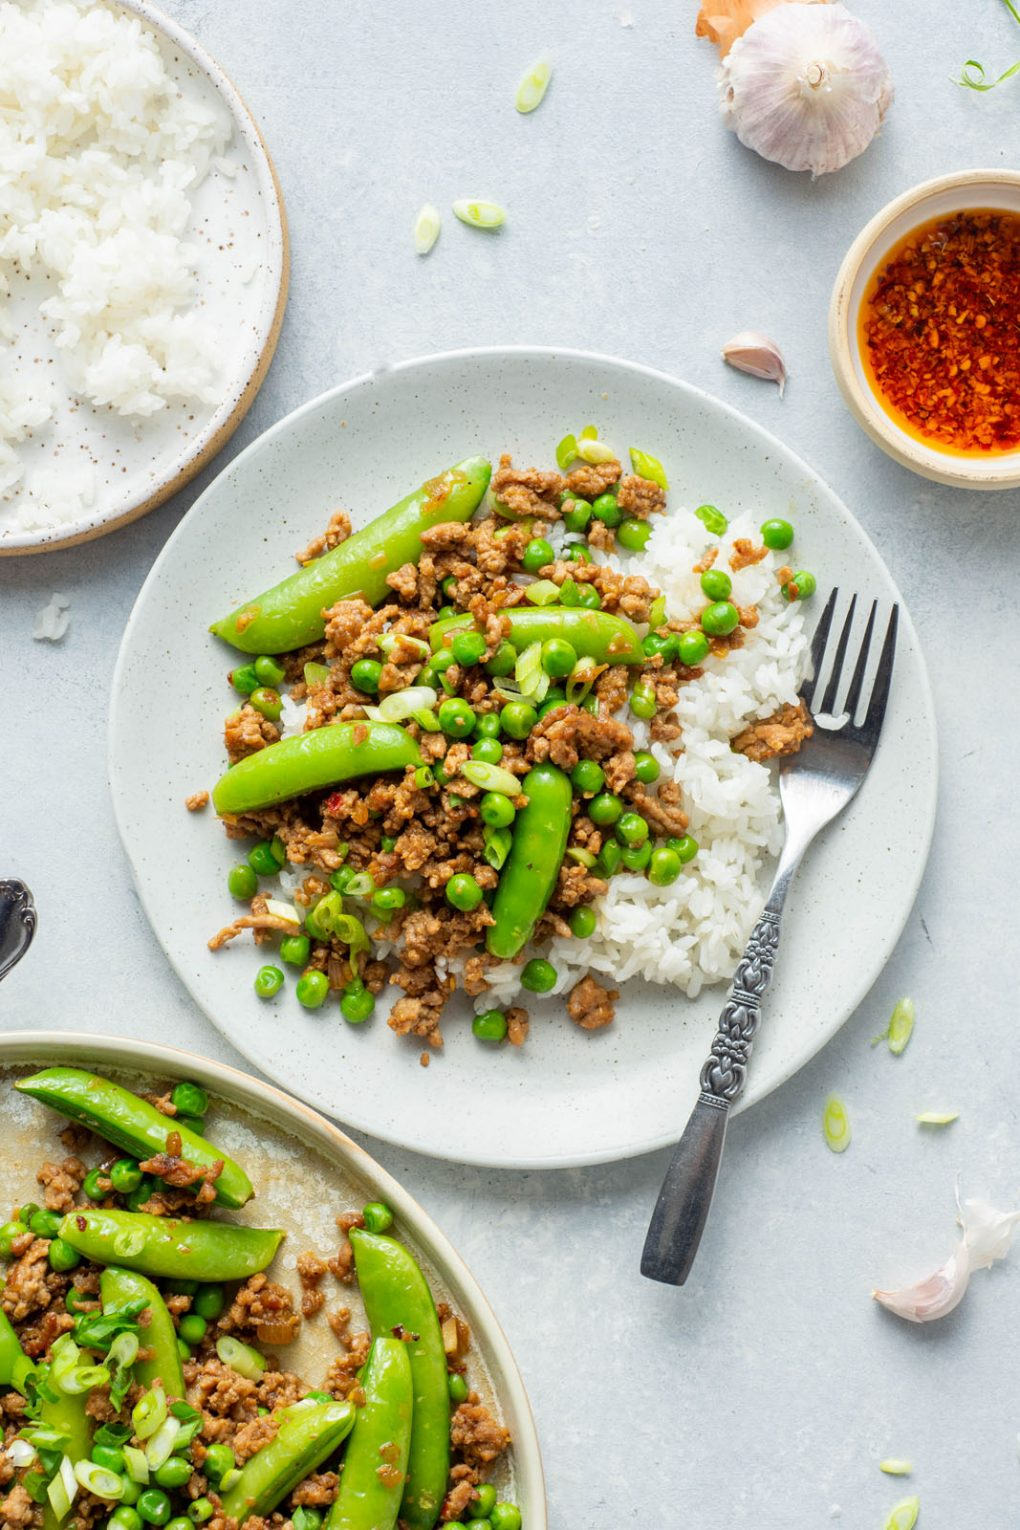 Overhead shot of a small white speckled plate with white rice, and a healthy portion of a crispy pork stir fry with green peas and sugar snap peas. A small decorative silver fork is on the plate, and it's on a light colored background next to a bowl of rice, a larger plate filled with saucy stir fry, and a small bowl of bright red chili oil.